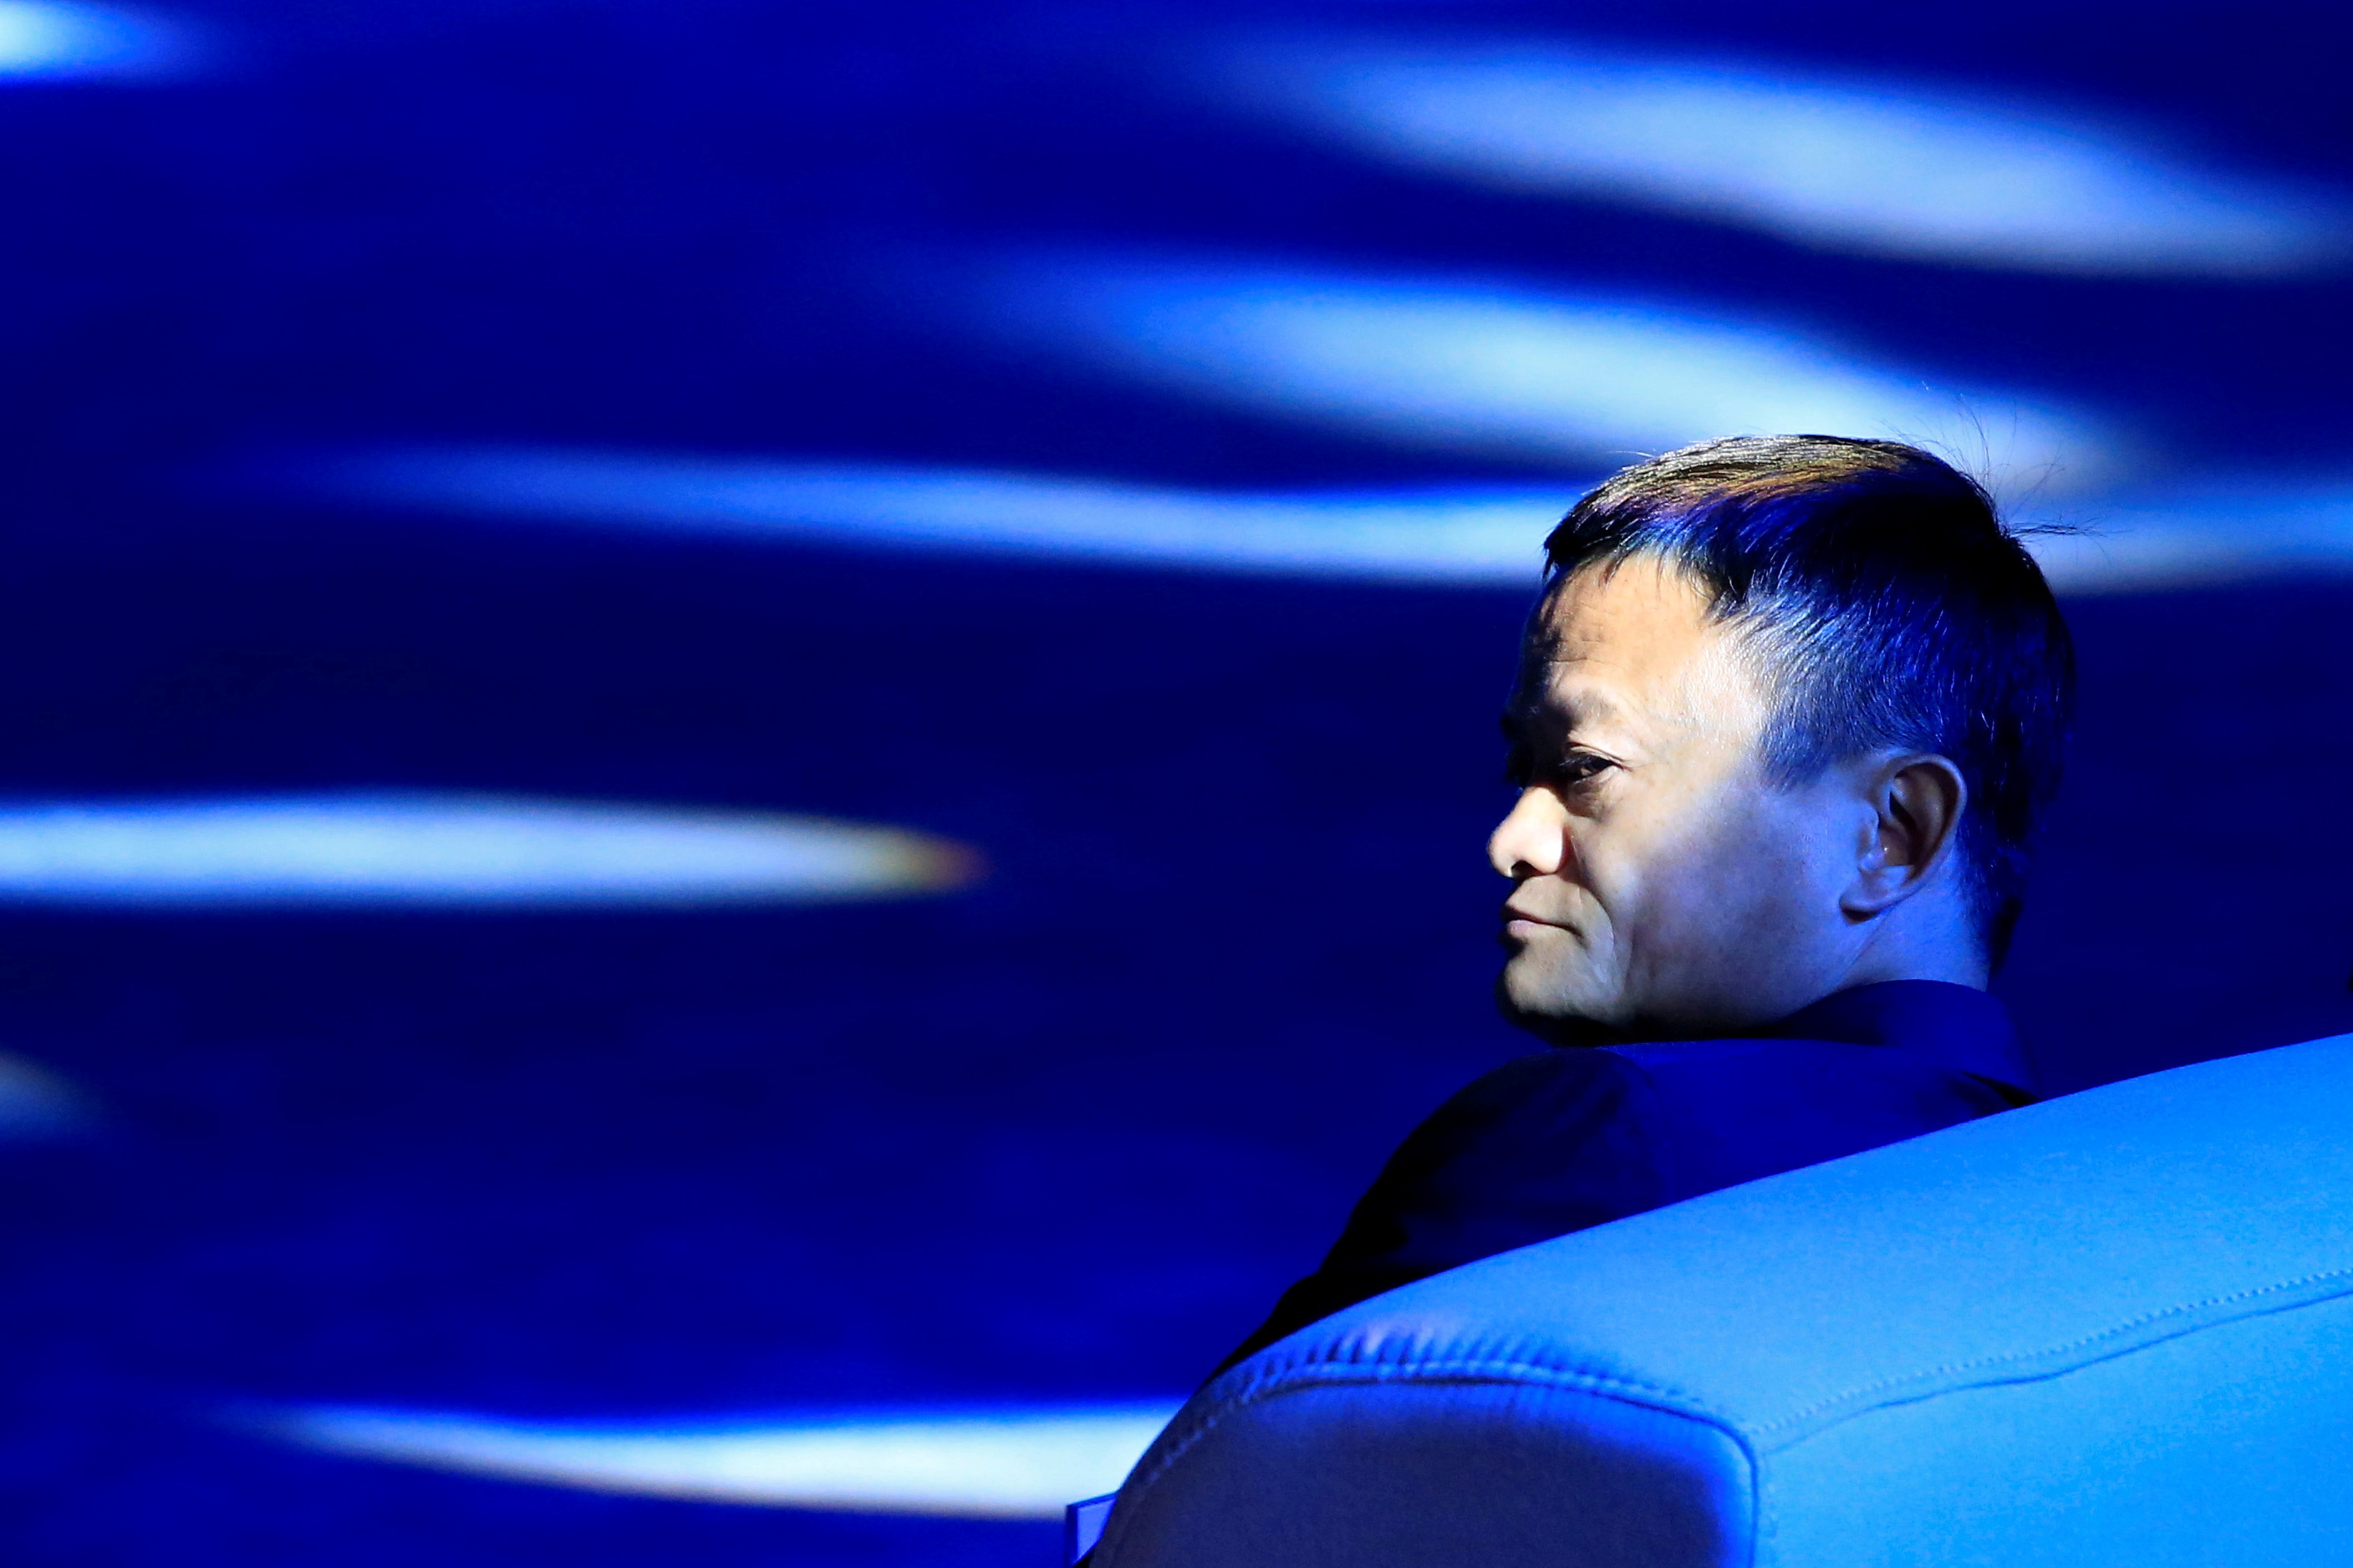 Alibaba Group co-founder and executive chairman Jack Ma attends the World Artificial Intelligence Conference (WAIC) in Shanghai, China, September 17, 2018.  REUTERS/Aly Song